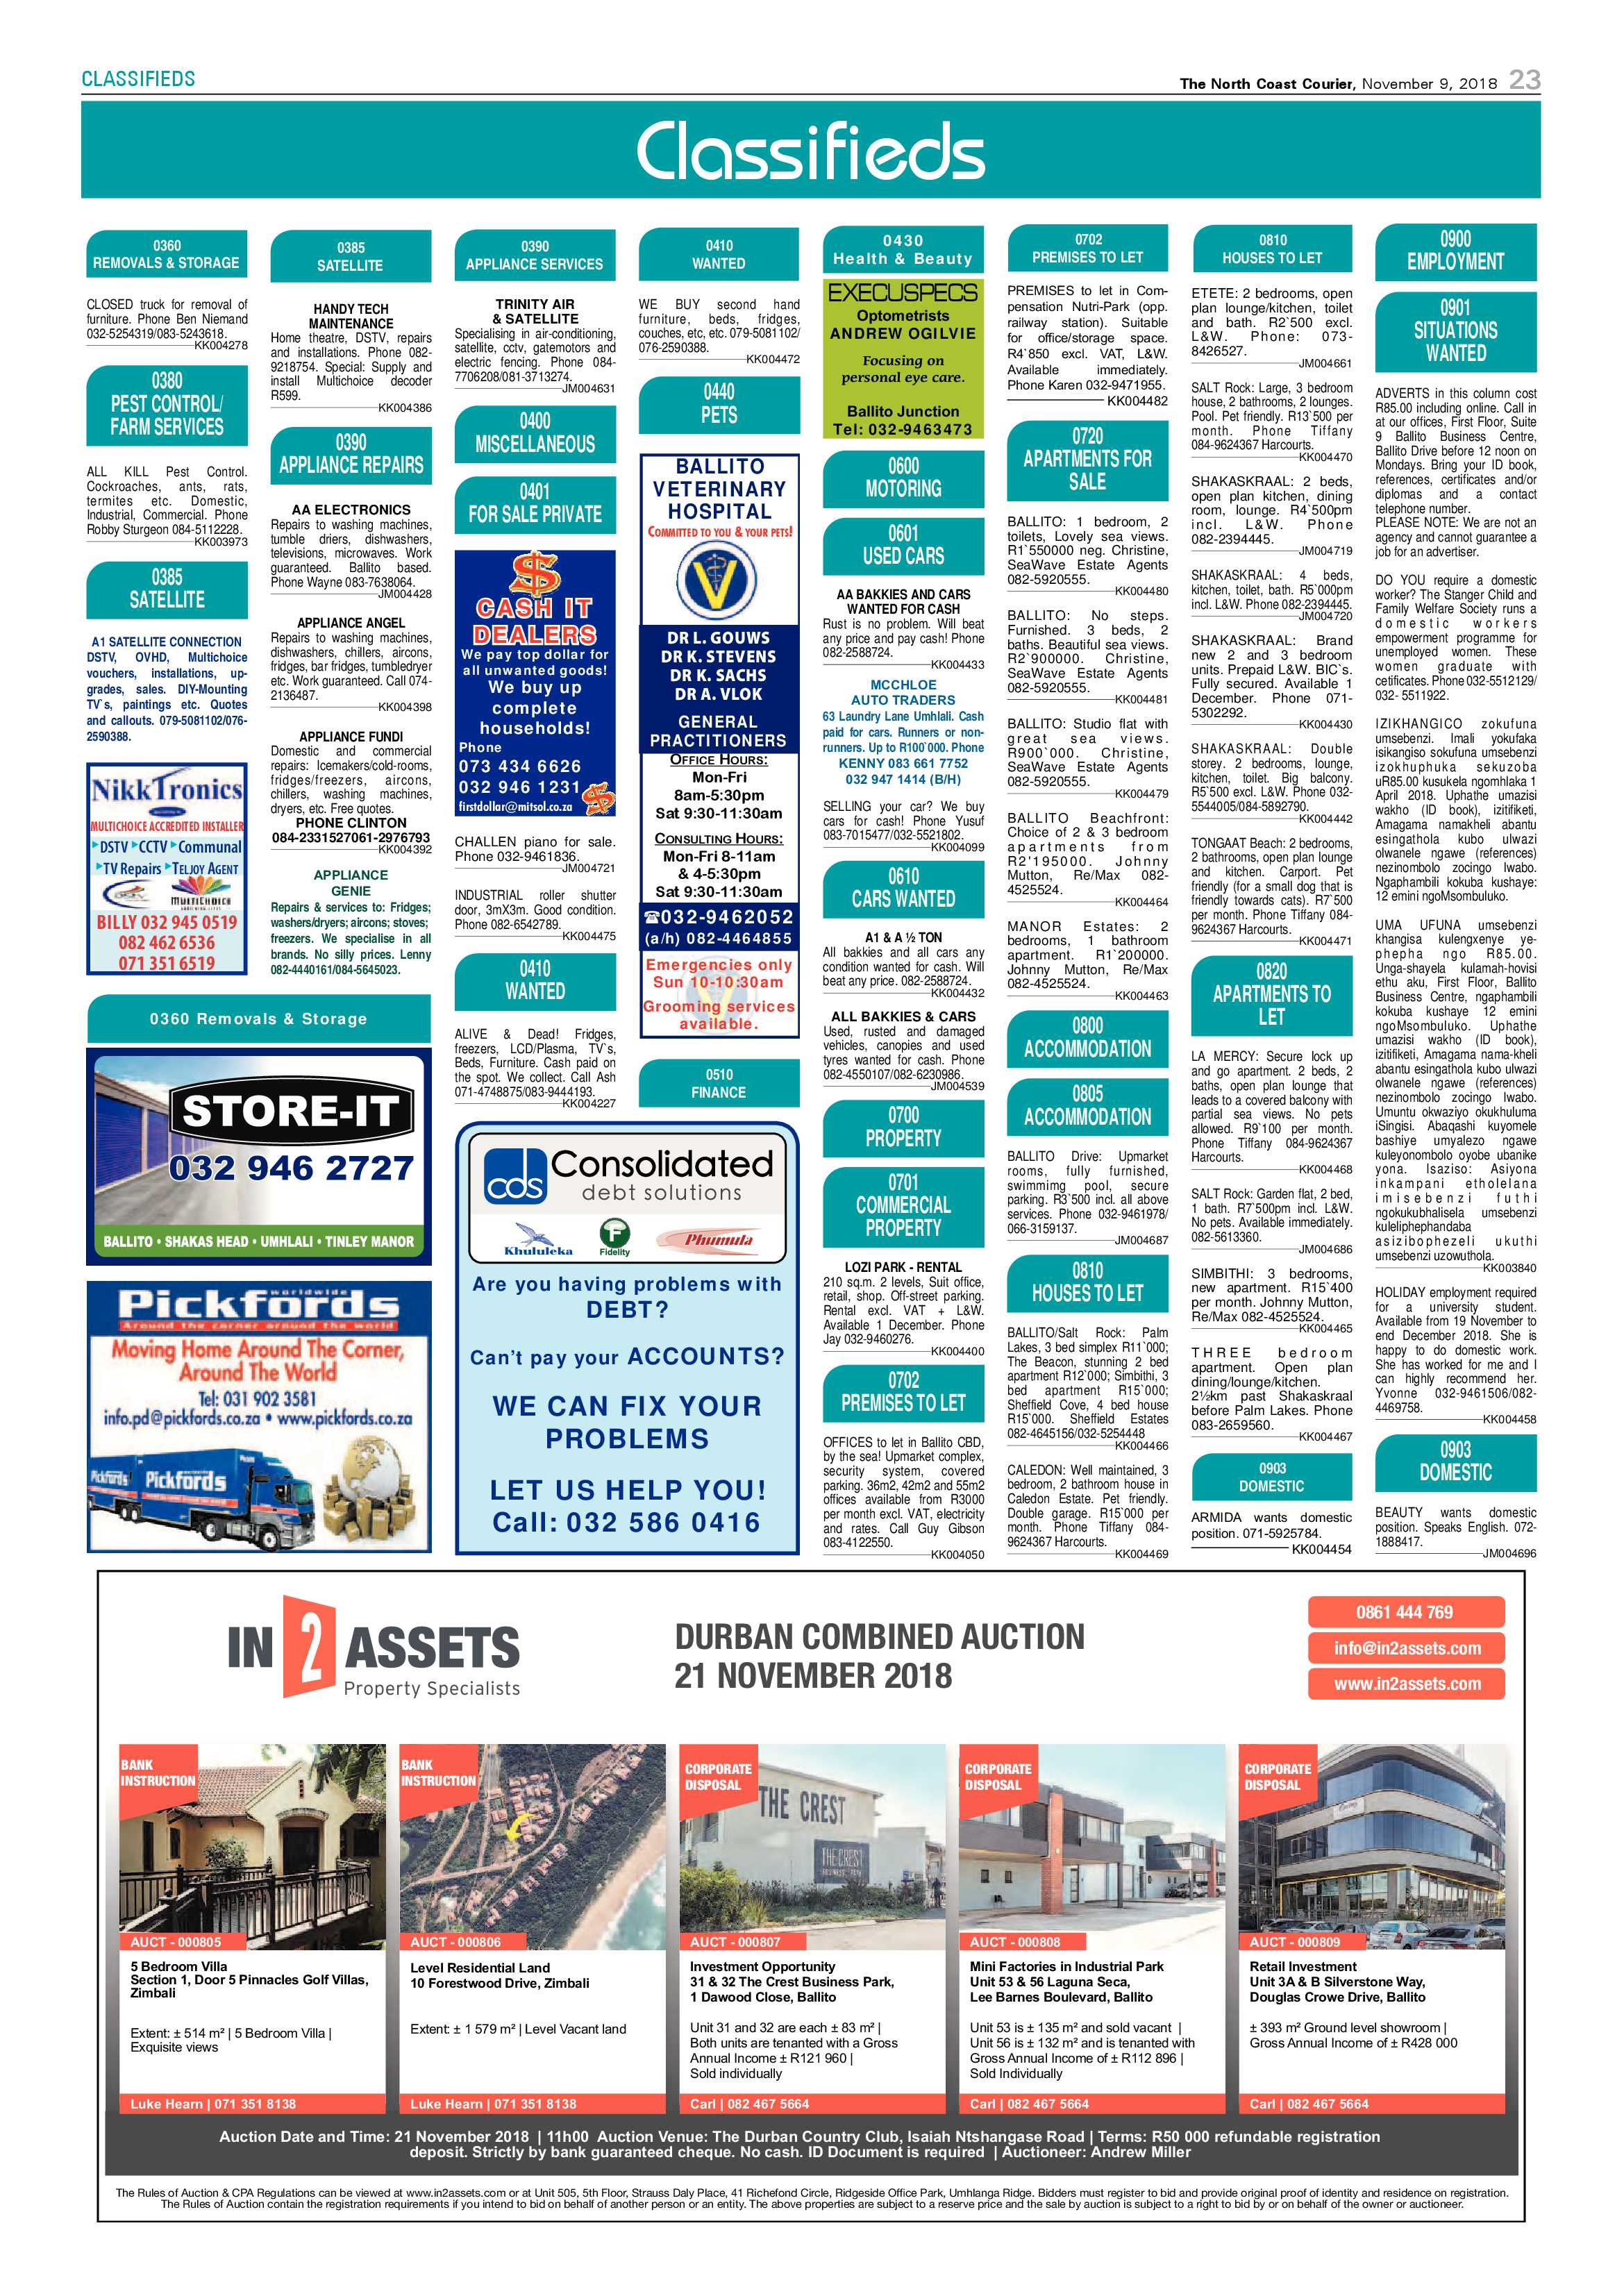 north-coast-courier-09-november-2018-epapers-page-23